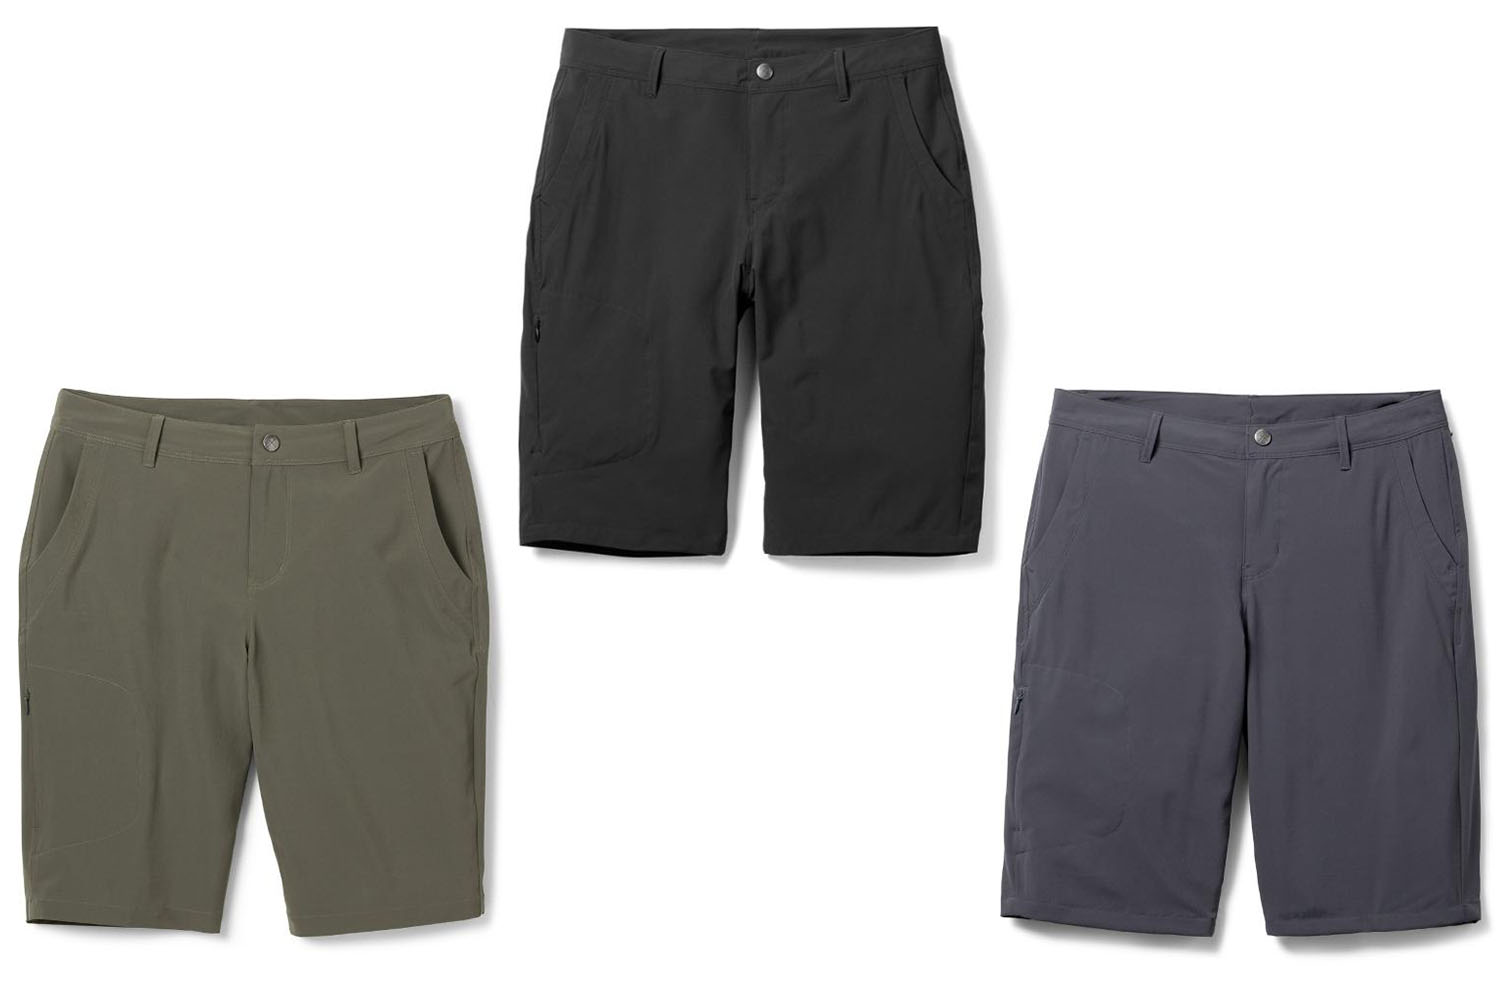 REI selling wildest shorts